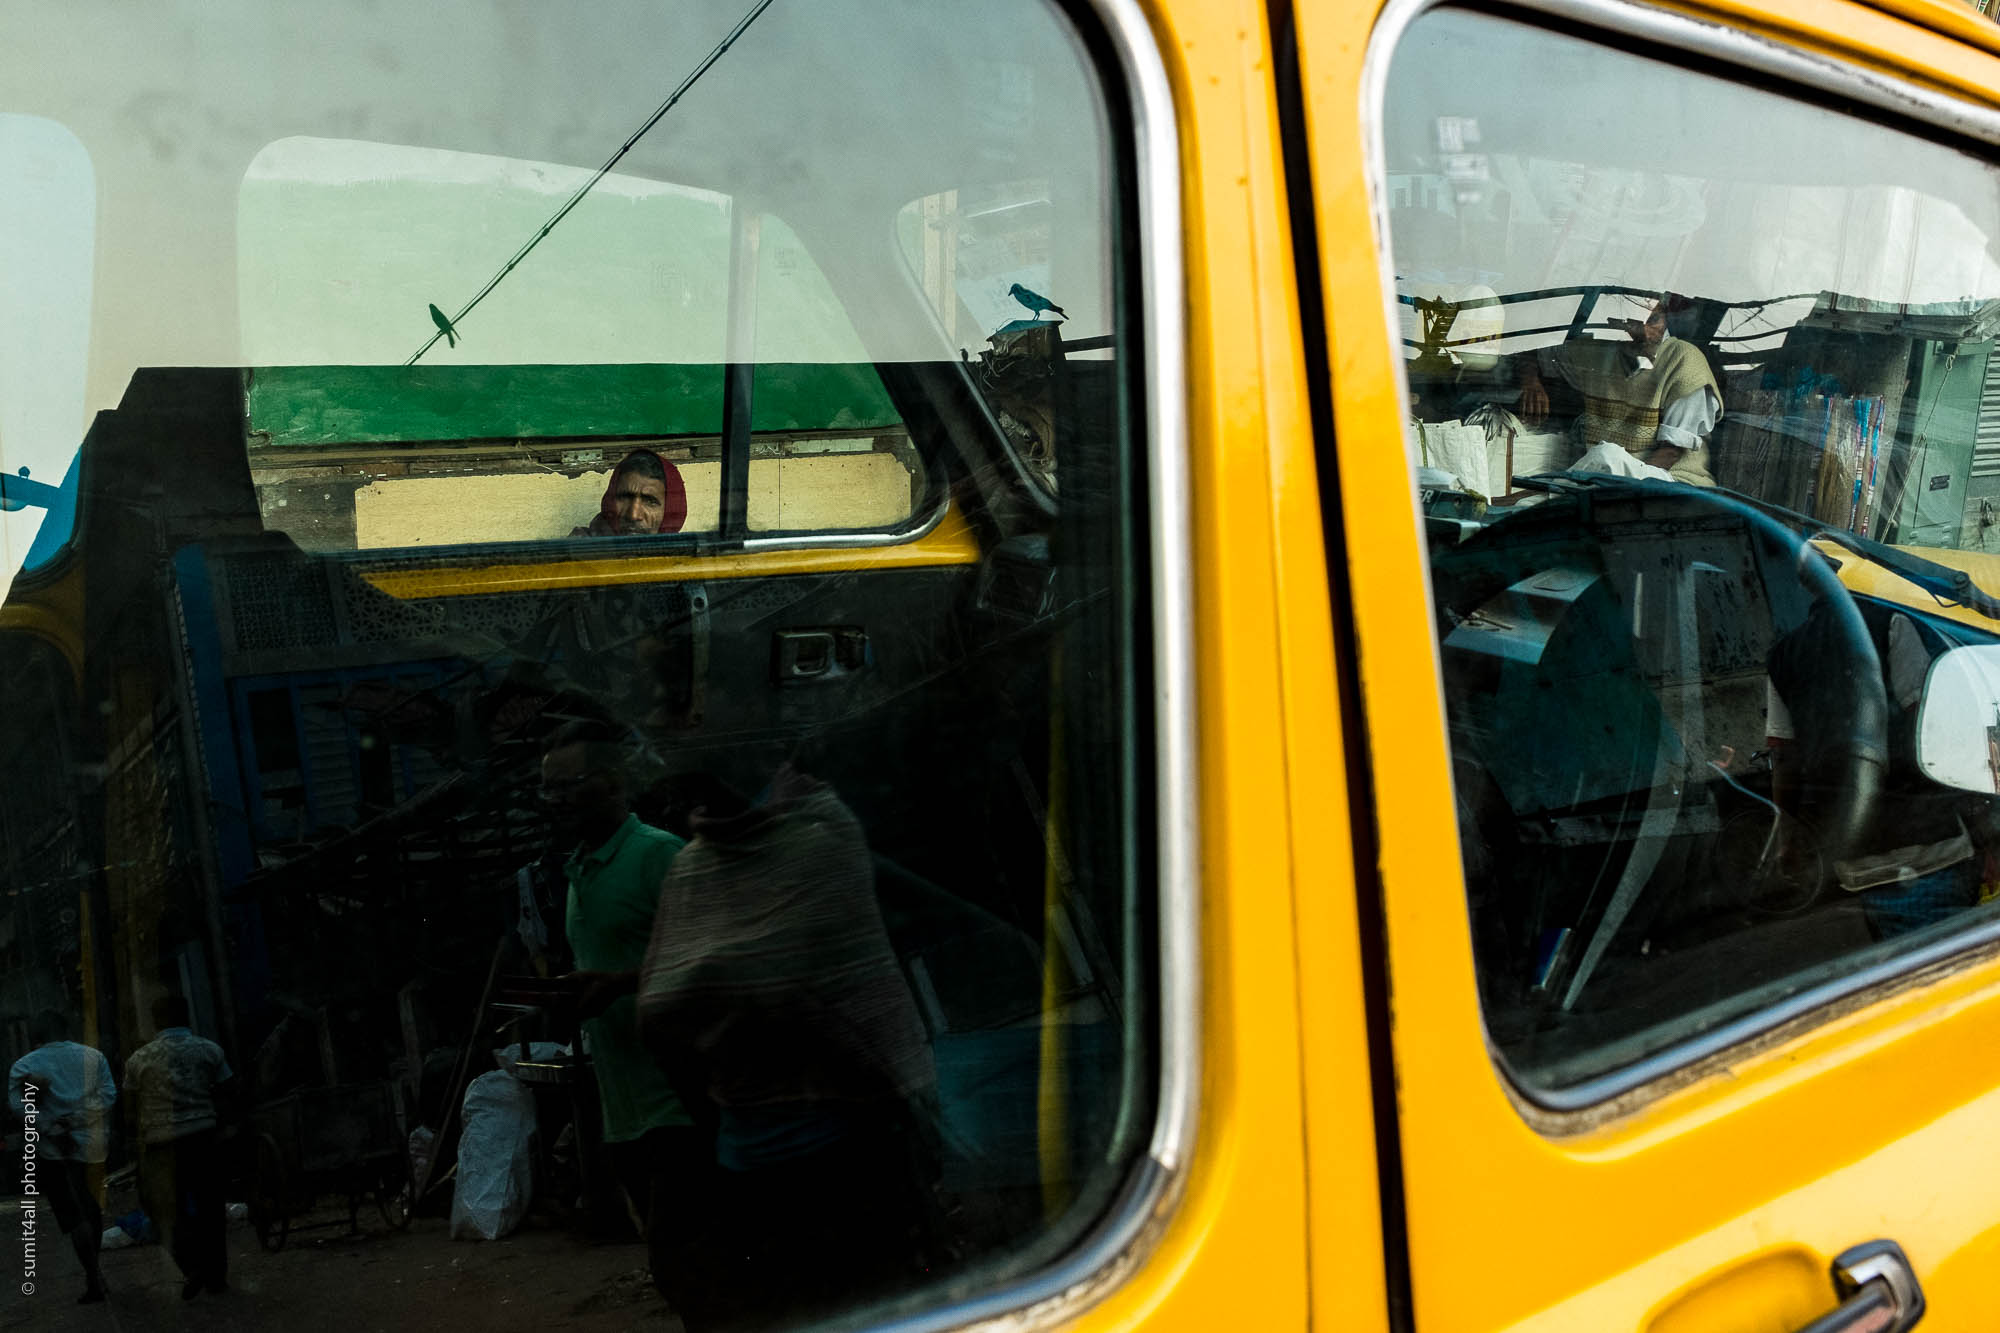 Reflections on a Yellow Taxi in Kolkata